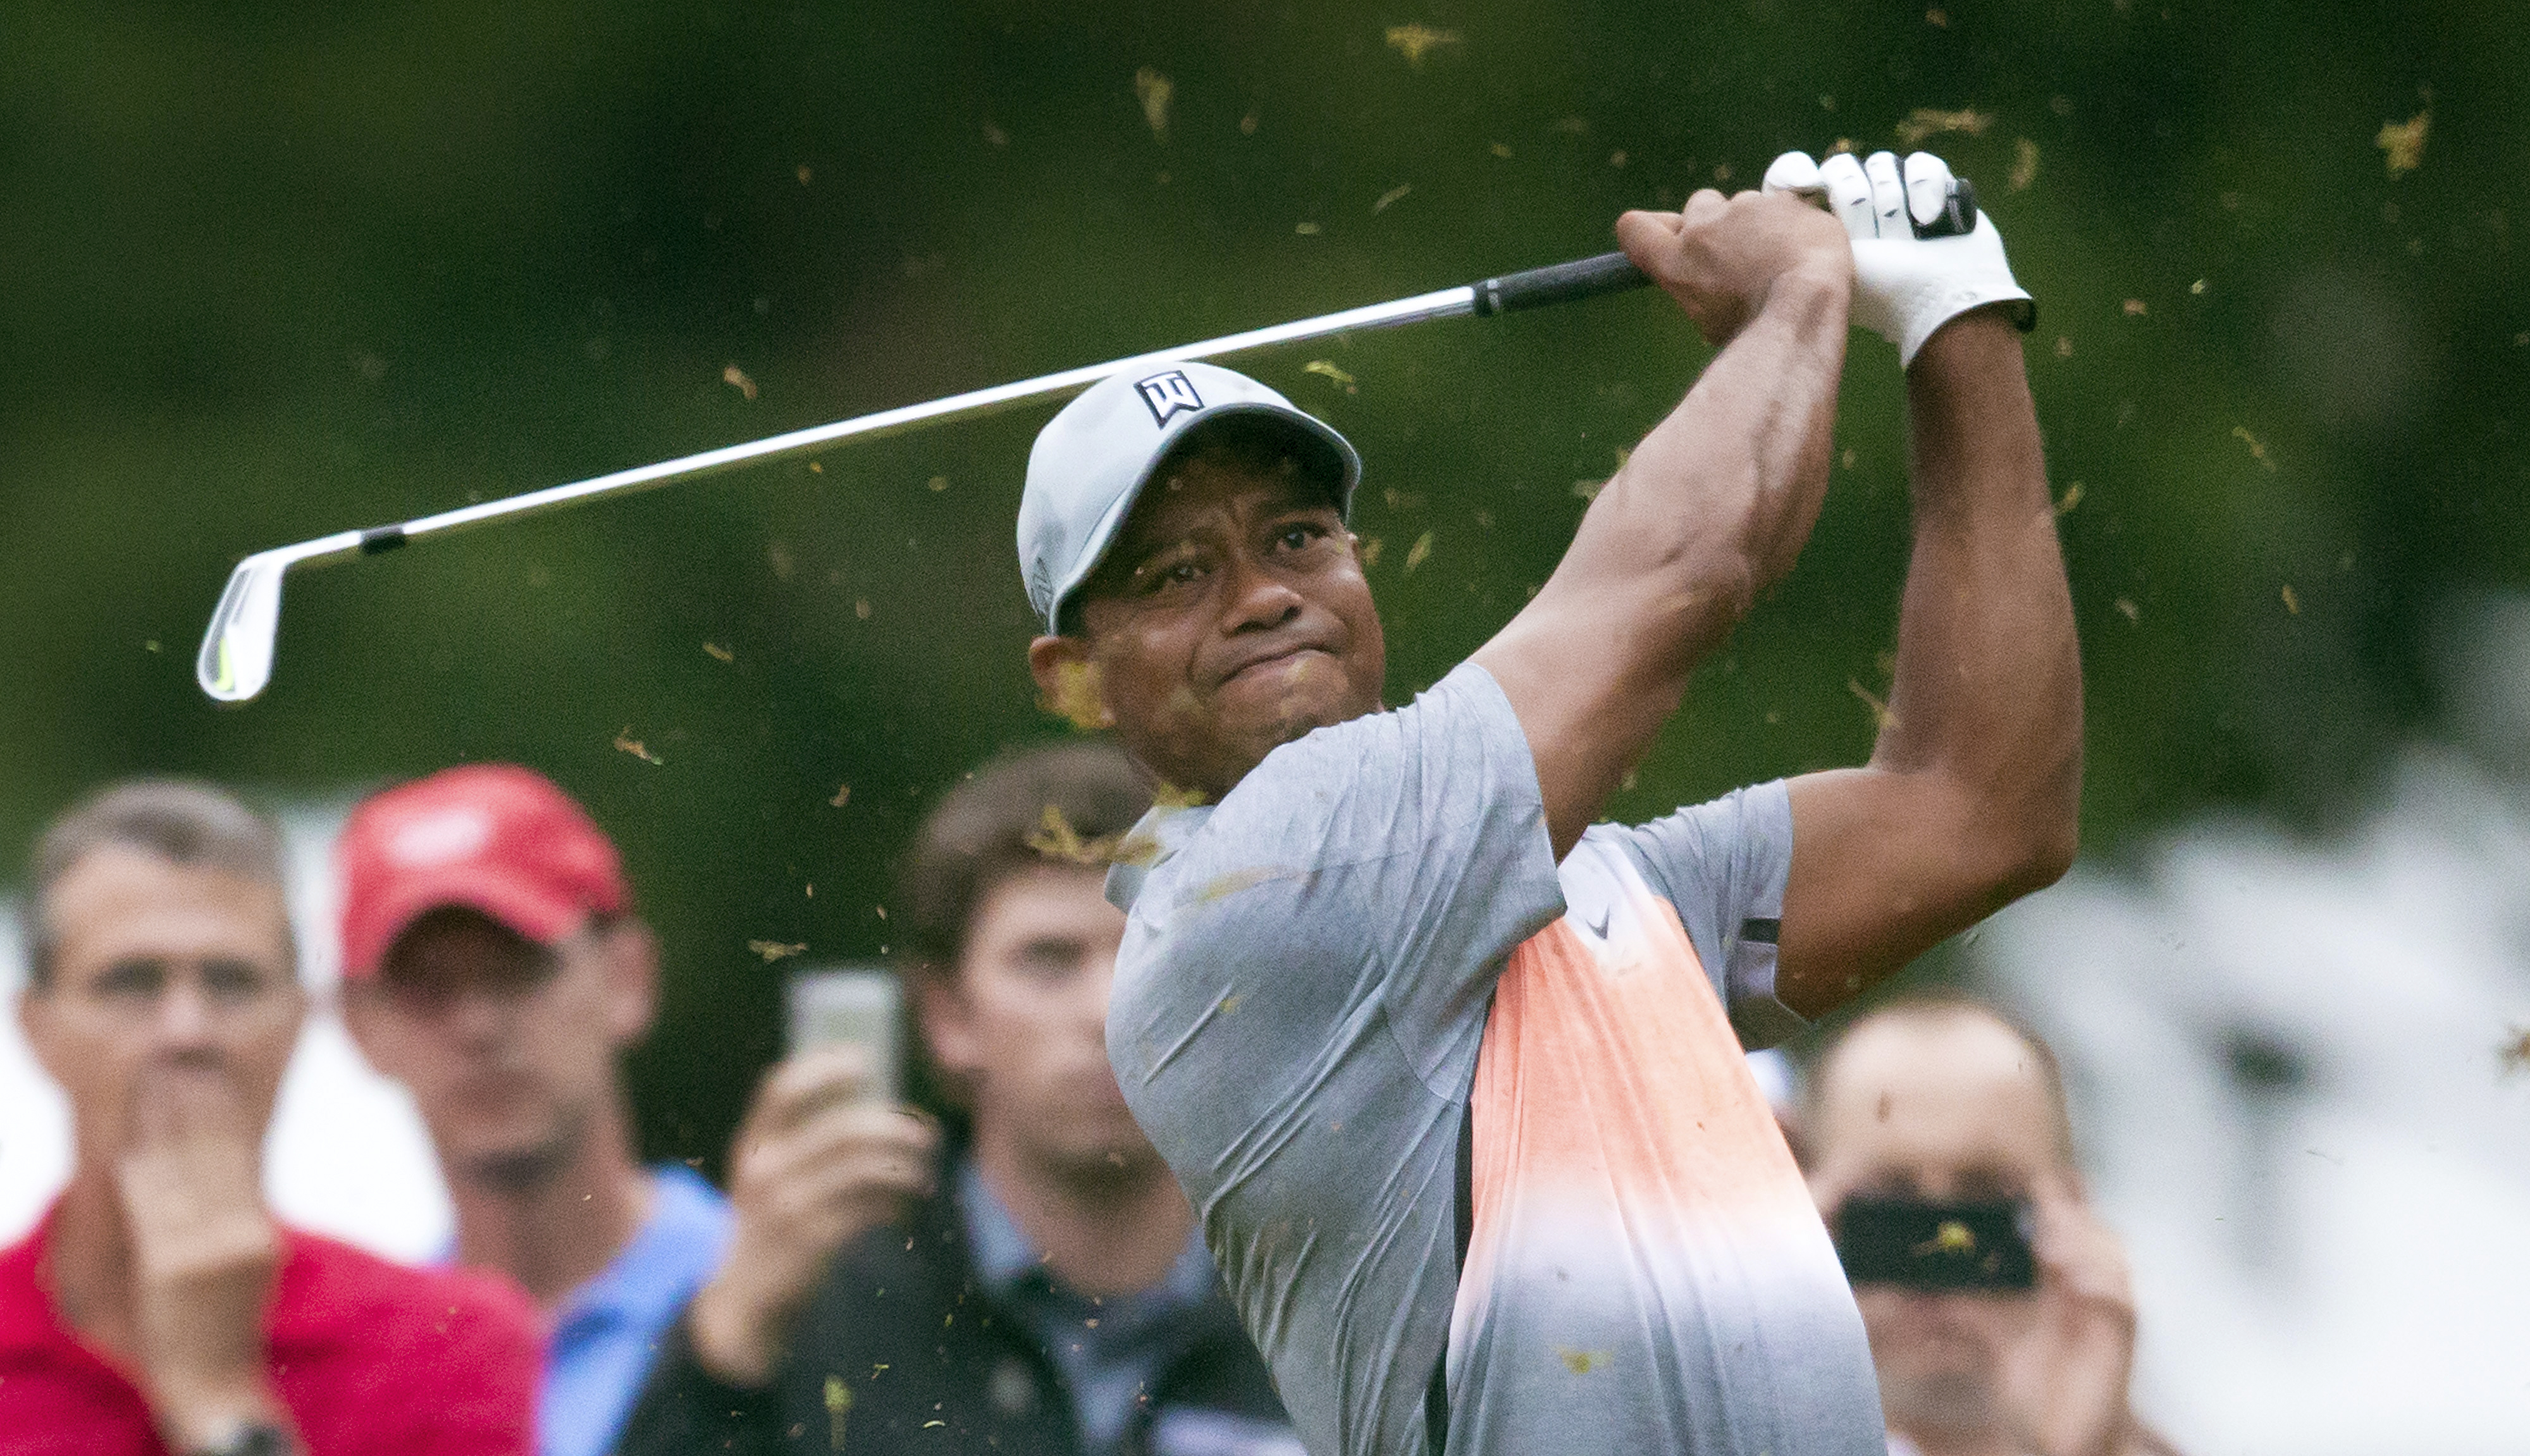 Tiger Woods tees off on the third hole during the pro-am at the Wyndham Championship golf tournament, Wednesday, Aug. 19, 2015, at Sedgefield Country Club in Greensboro, N.C. (AP Photo/Rob Brown)